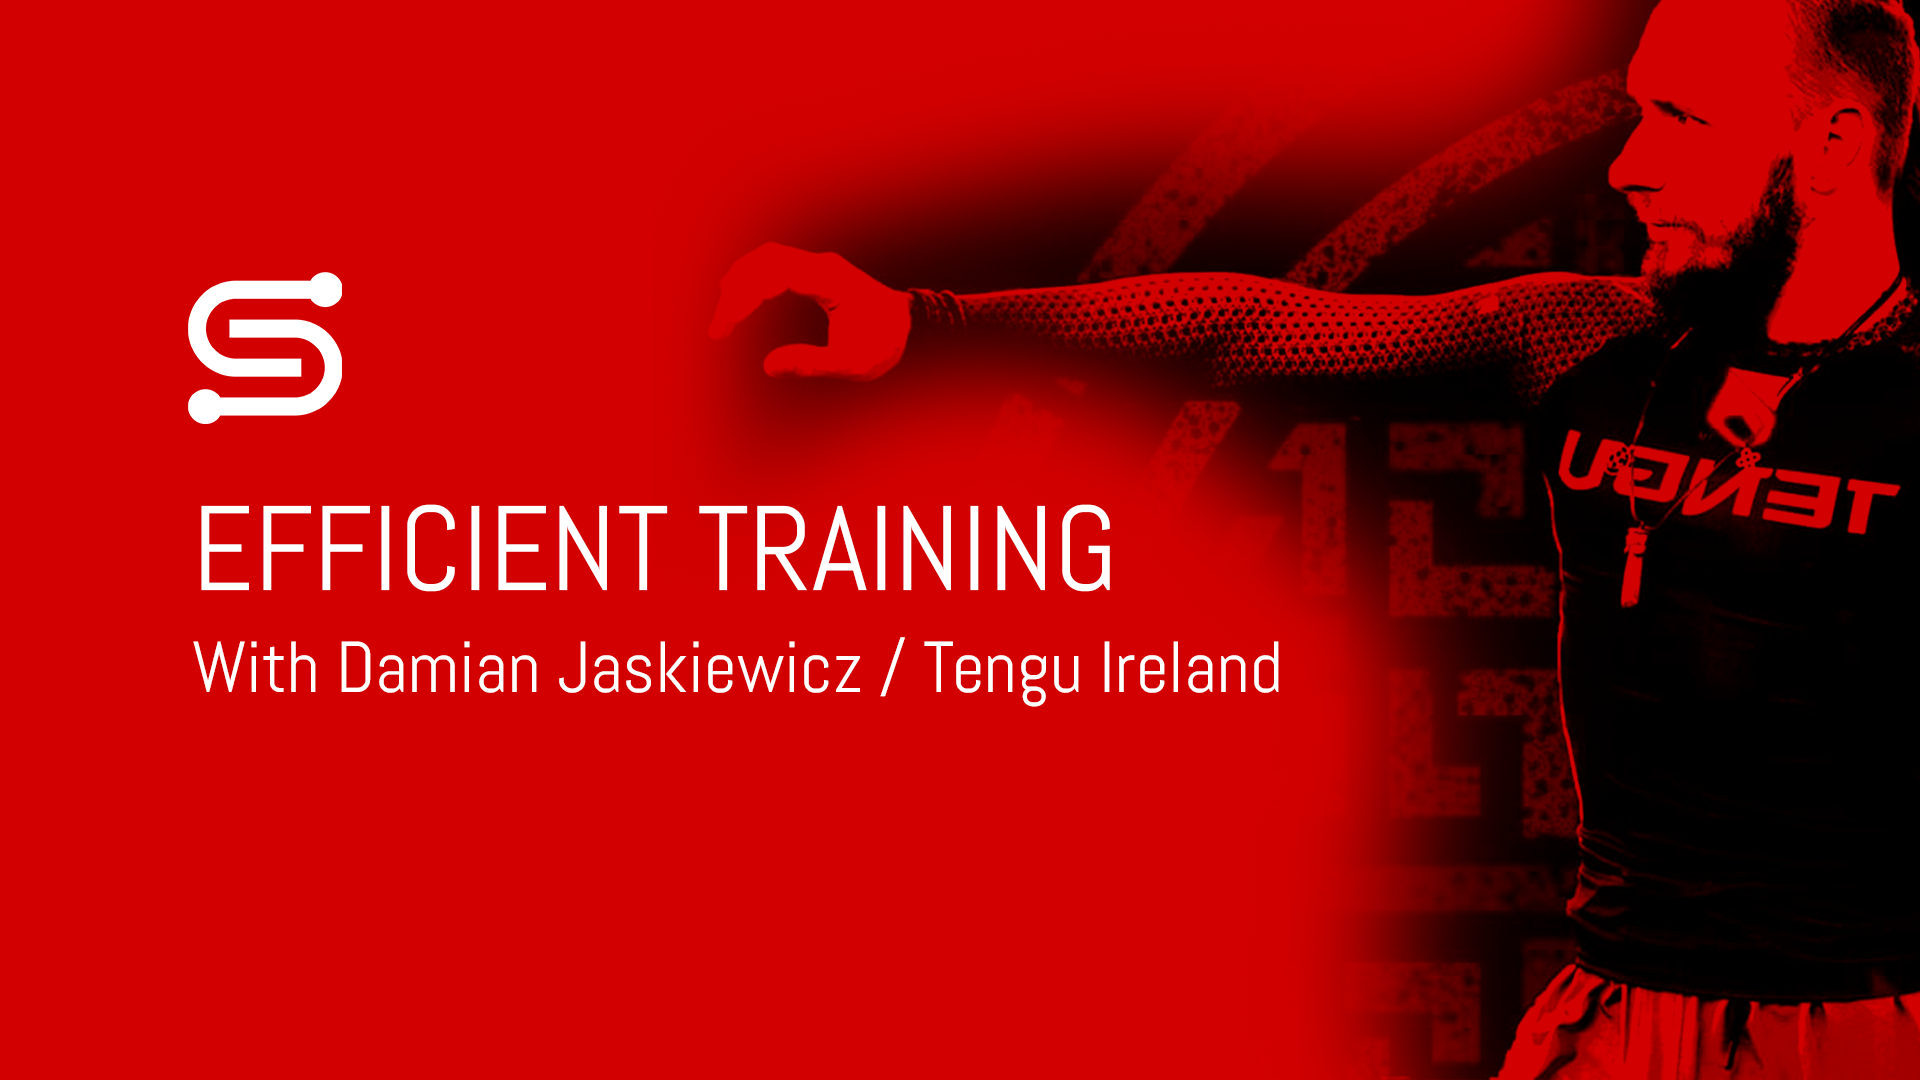 Efficient Training with Damian Jaskiewicz